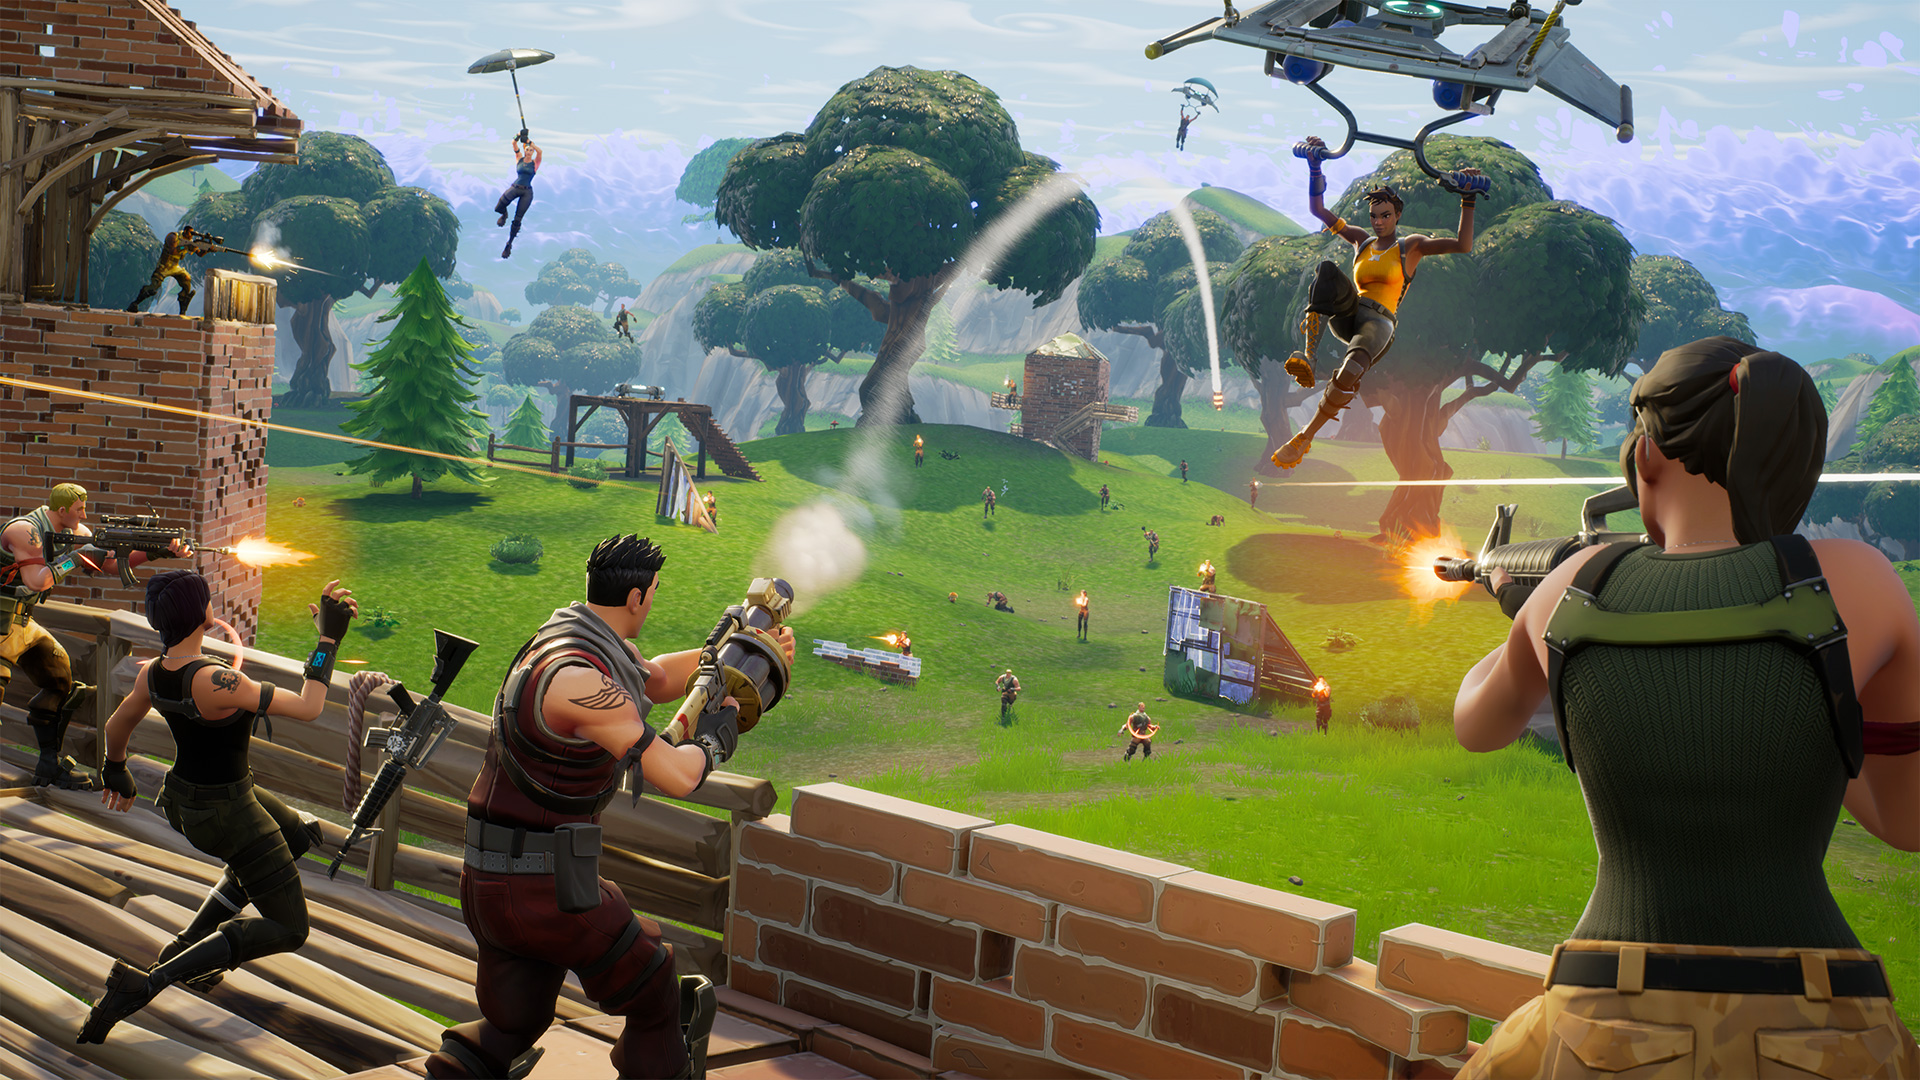 Fortnite Battle Royale Is Getting A New Mode With Five 20 Person